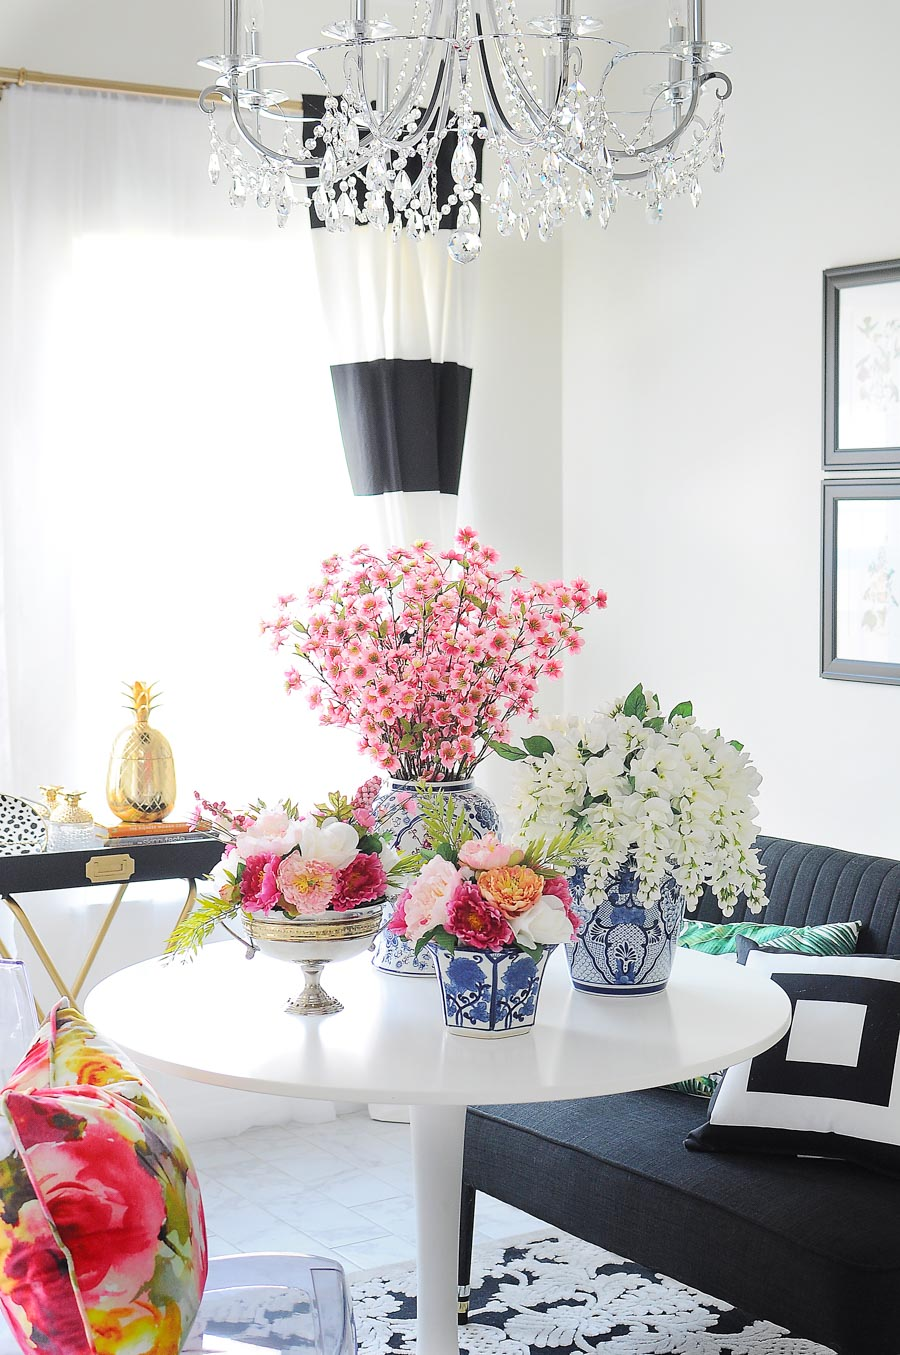 Using faux florals in your home is an easy and inexpensive way to add color and style to the various rooms of your home. This tutorial features instructions for how to DIY your own floral arrangements for home decor.